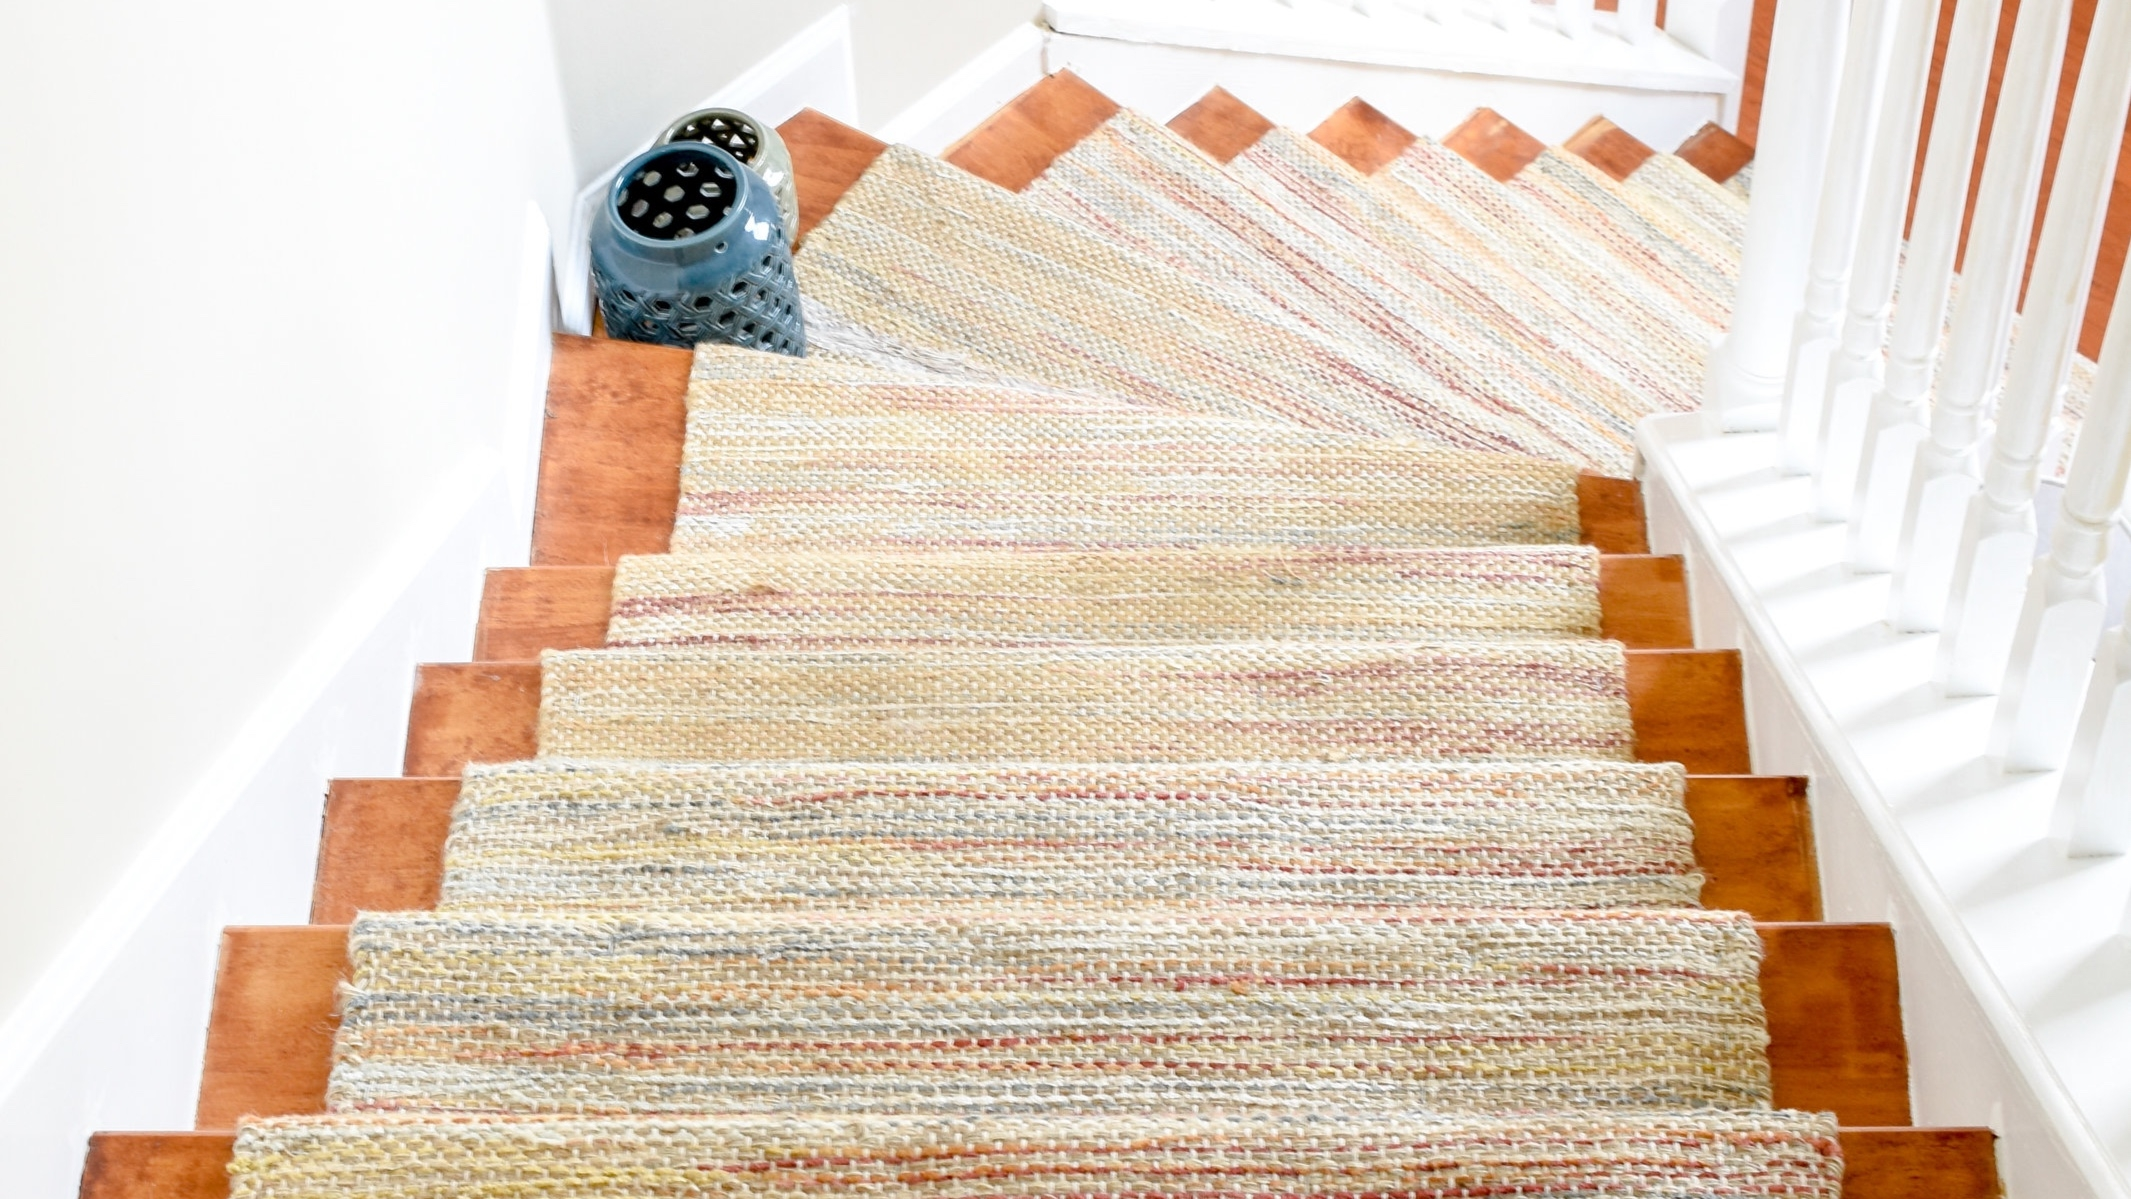 Diy Hardwood Staircase Makeover Replacing Carpet With Wood Treads | Converting Carpeted Stairs To Wood | Stair Tread | Staircase Makeover | Laminate Flooring | Wood Flooring | Risers